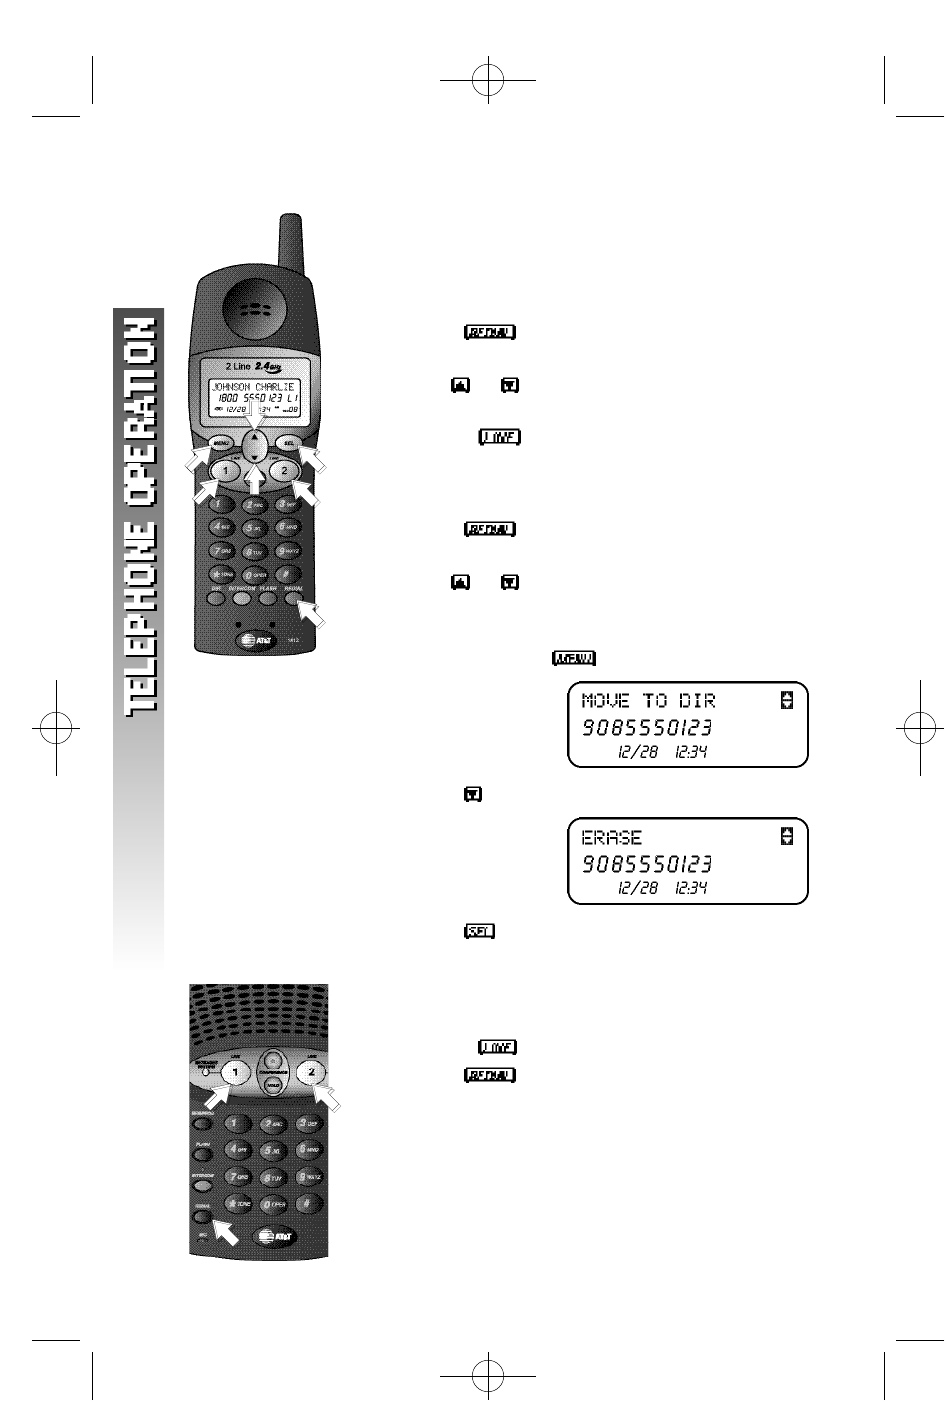 Page 23 of AT&T Cordless Telephone 1412 User Guide